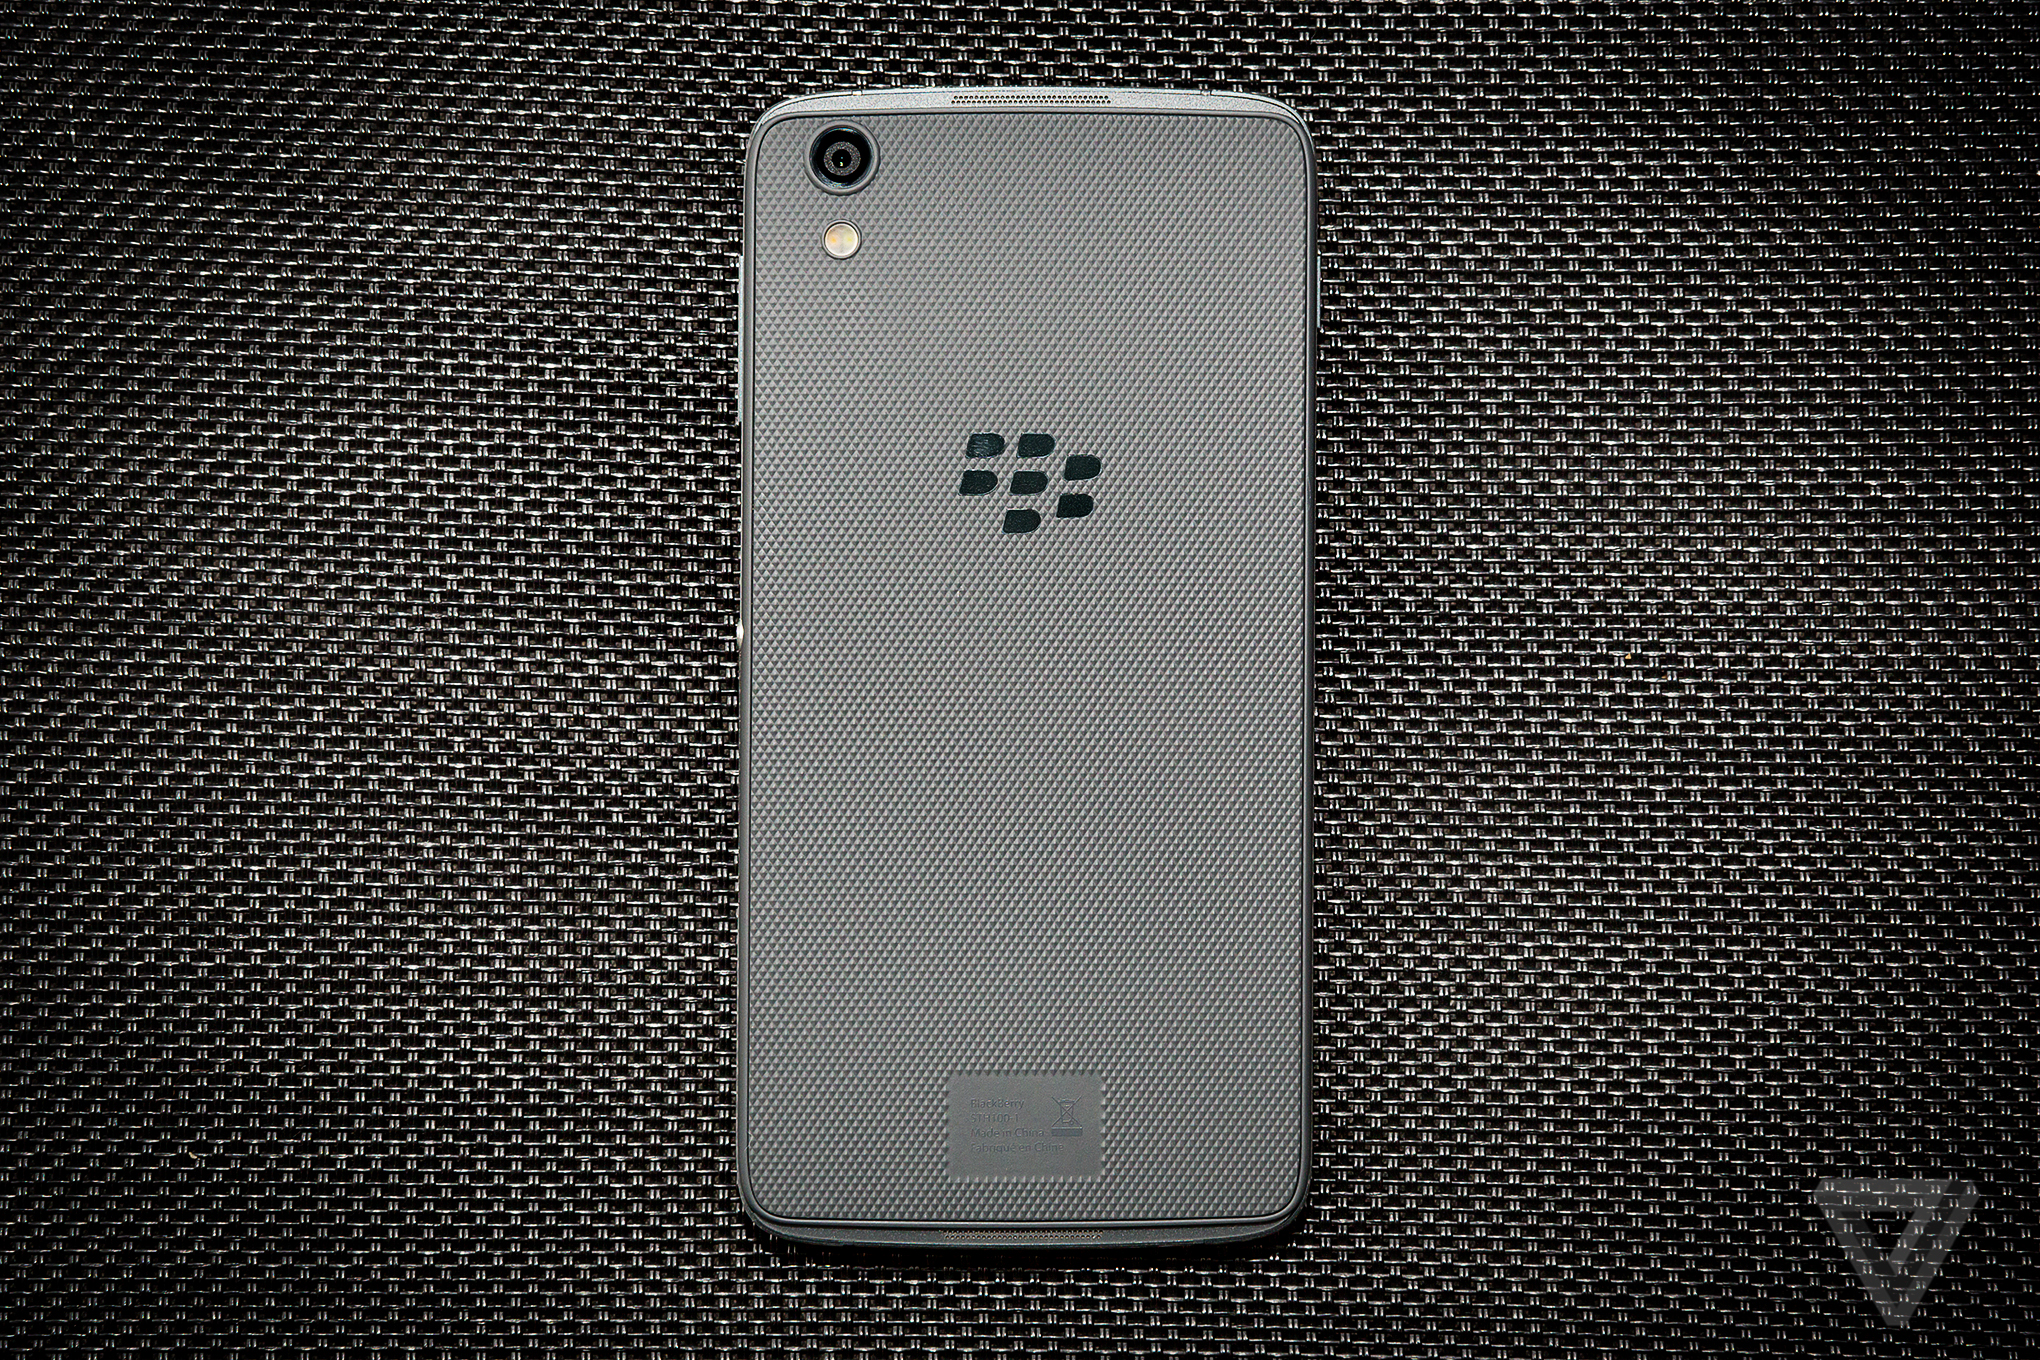 BlackBerry - The Verge